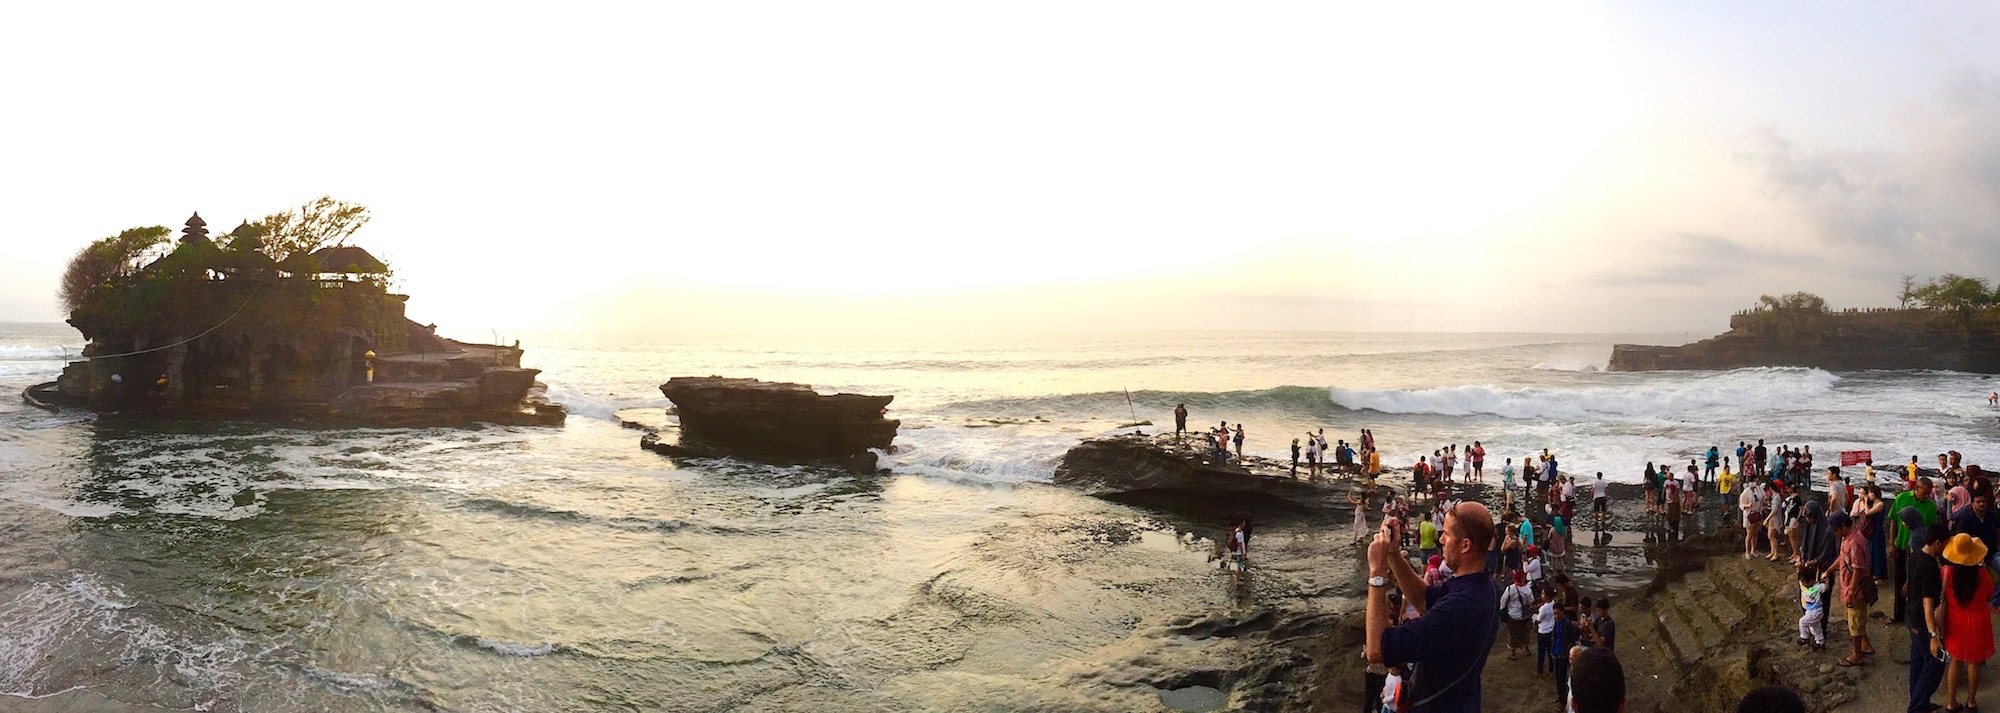 Tanah Lot, Bali. Foto: Patti Neves